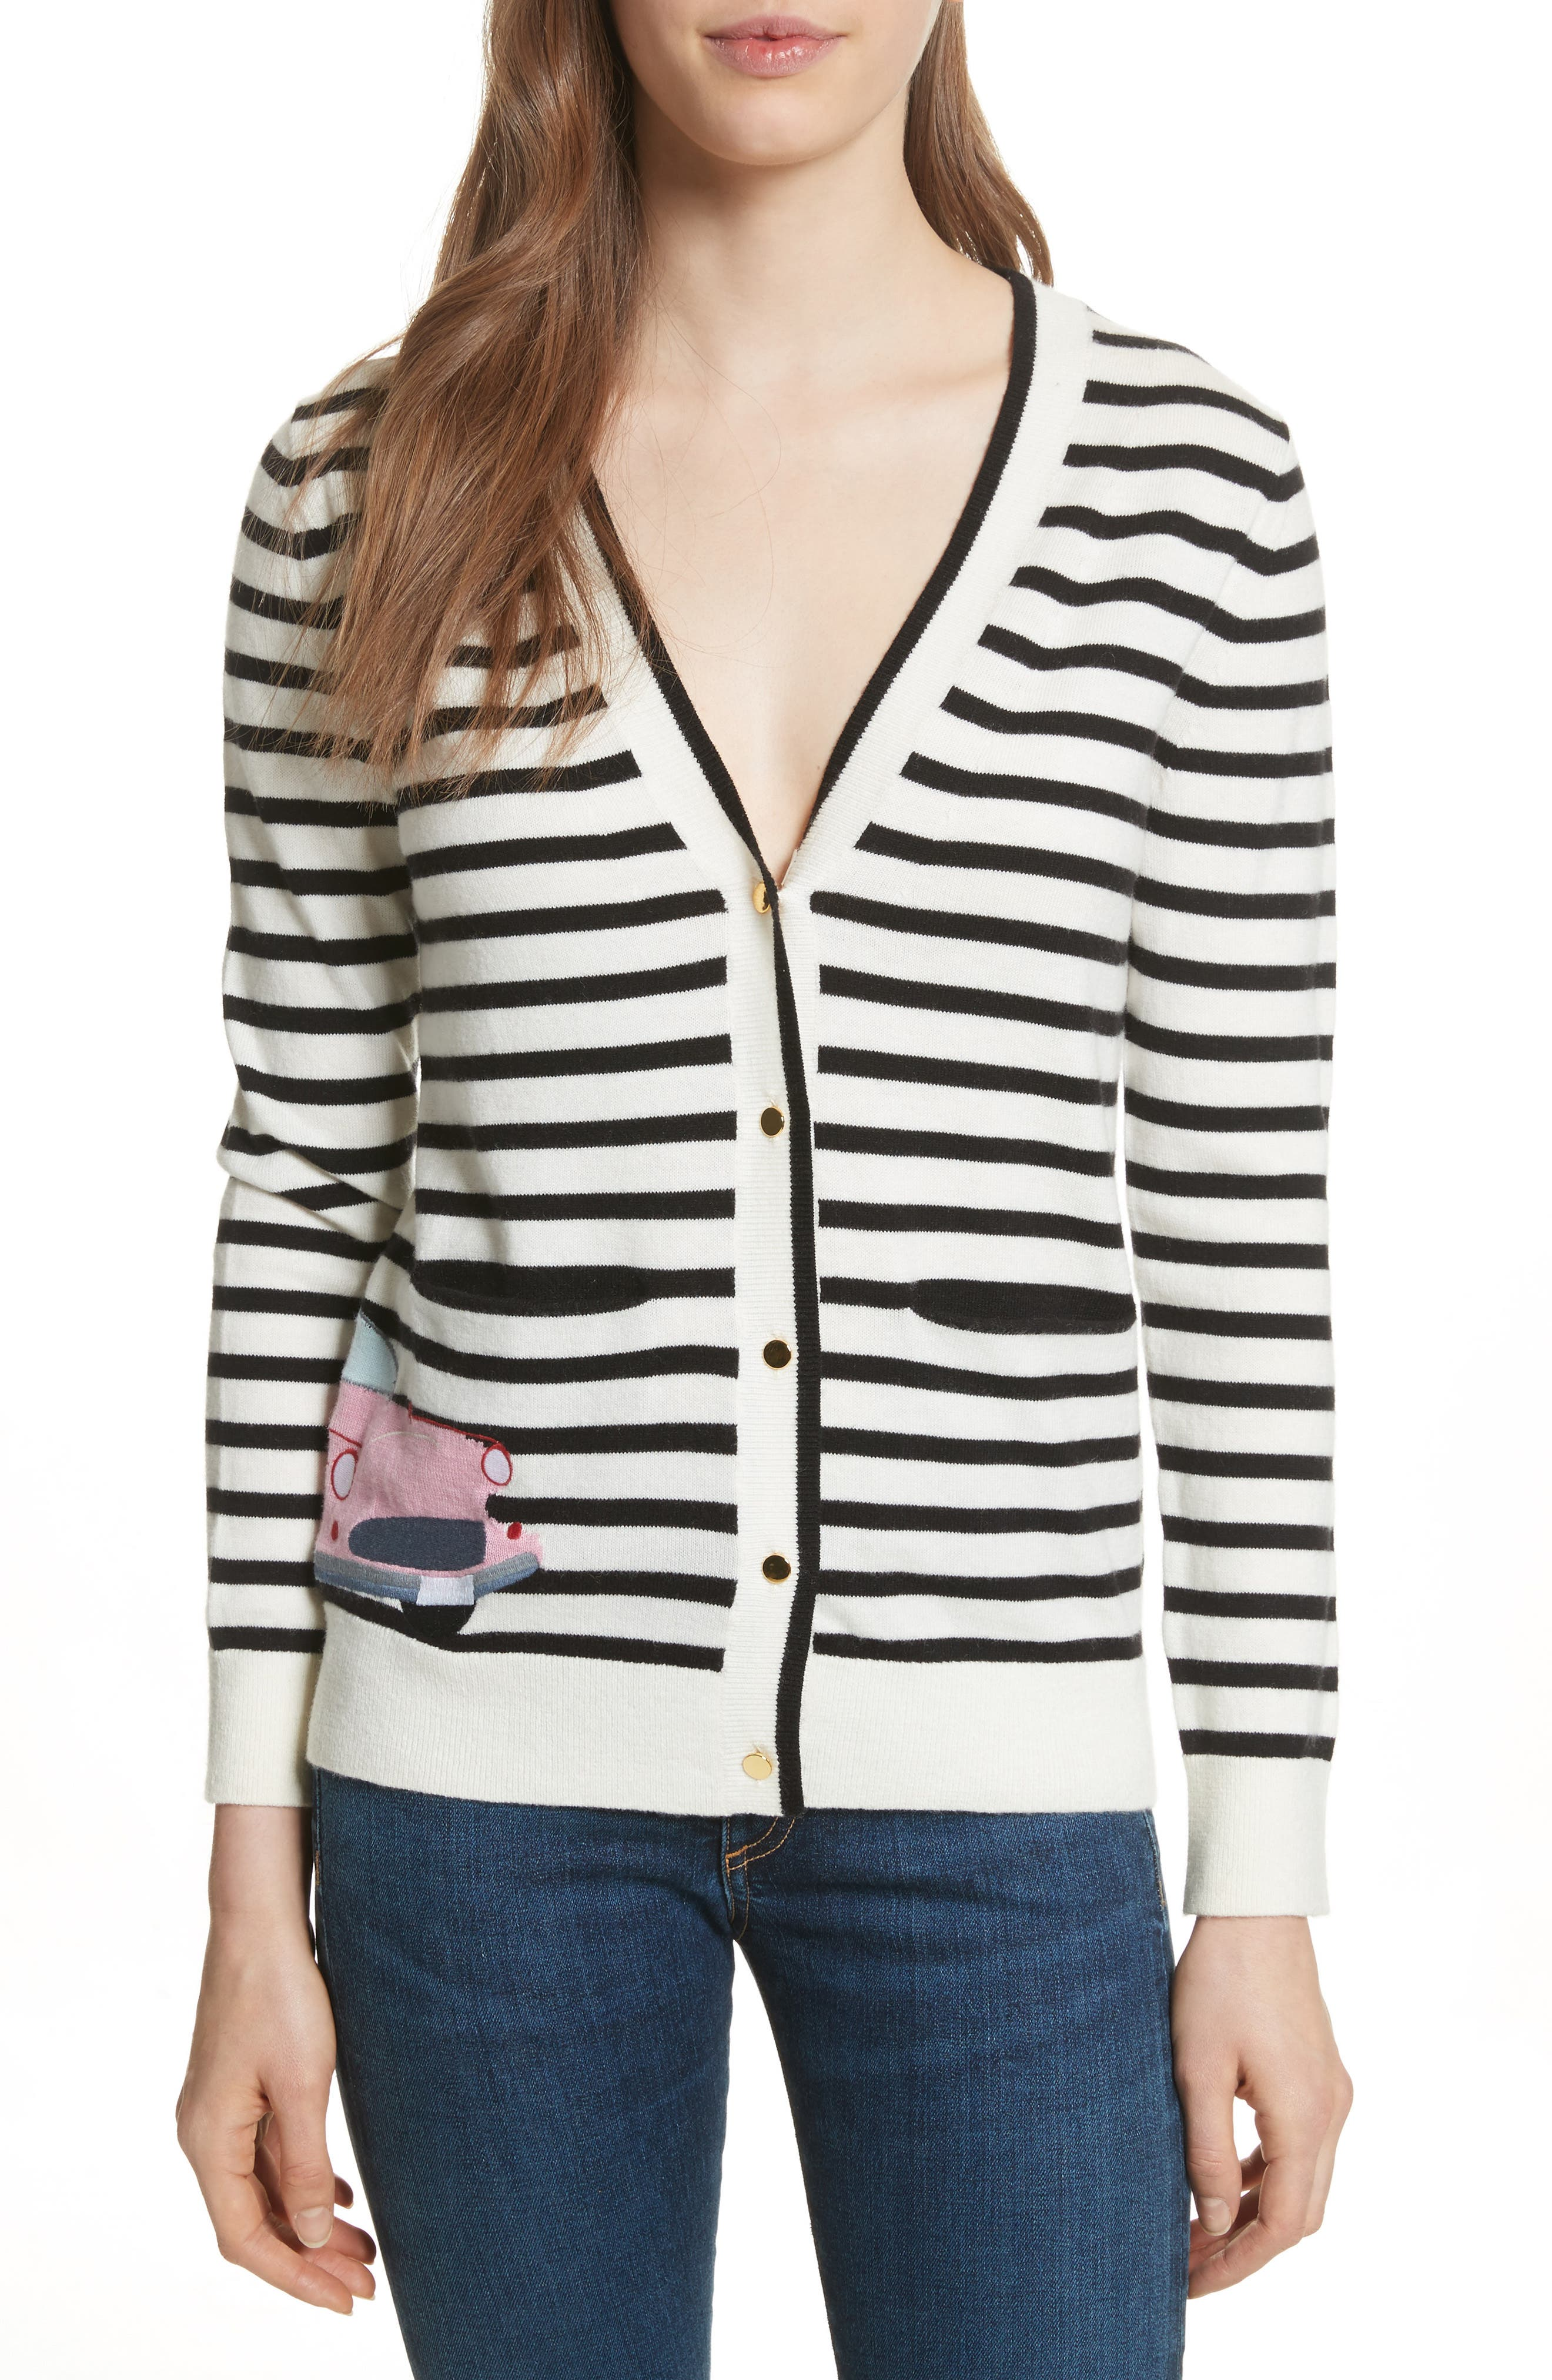 car cardigan,                             Main thumbnail 1, color,                             Black/ Cream Multi